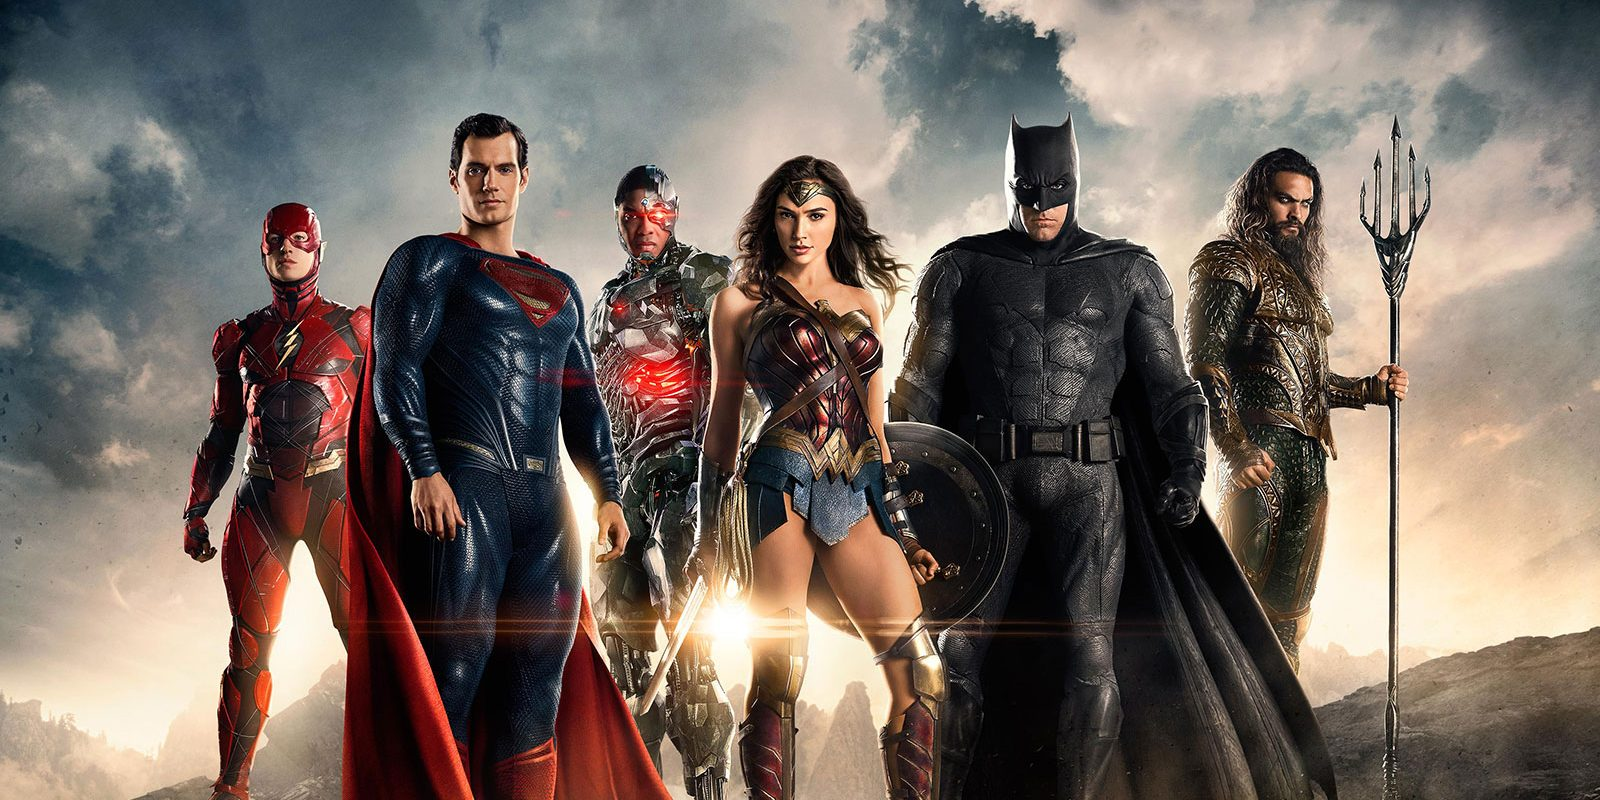 'Justice League' Cut Footage Provided More Depth To The Film